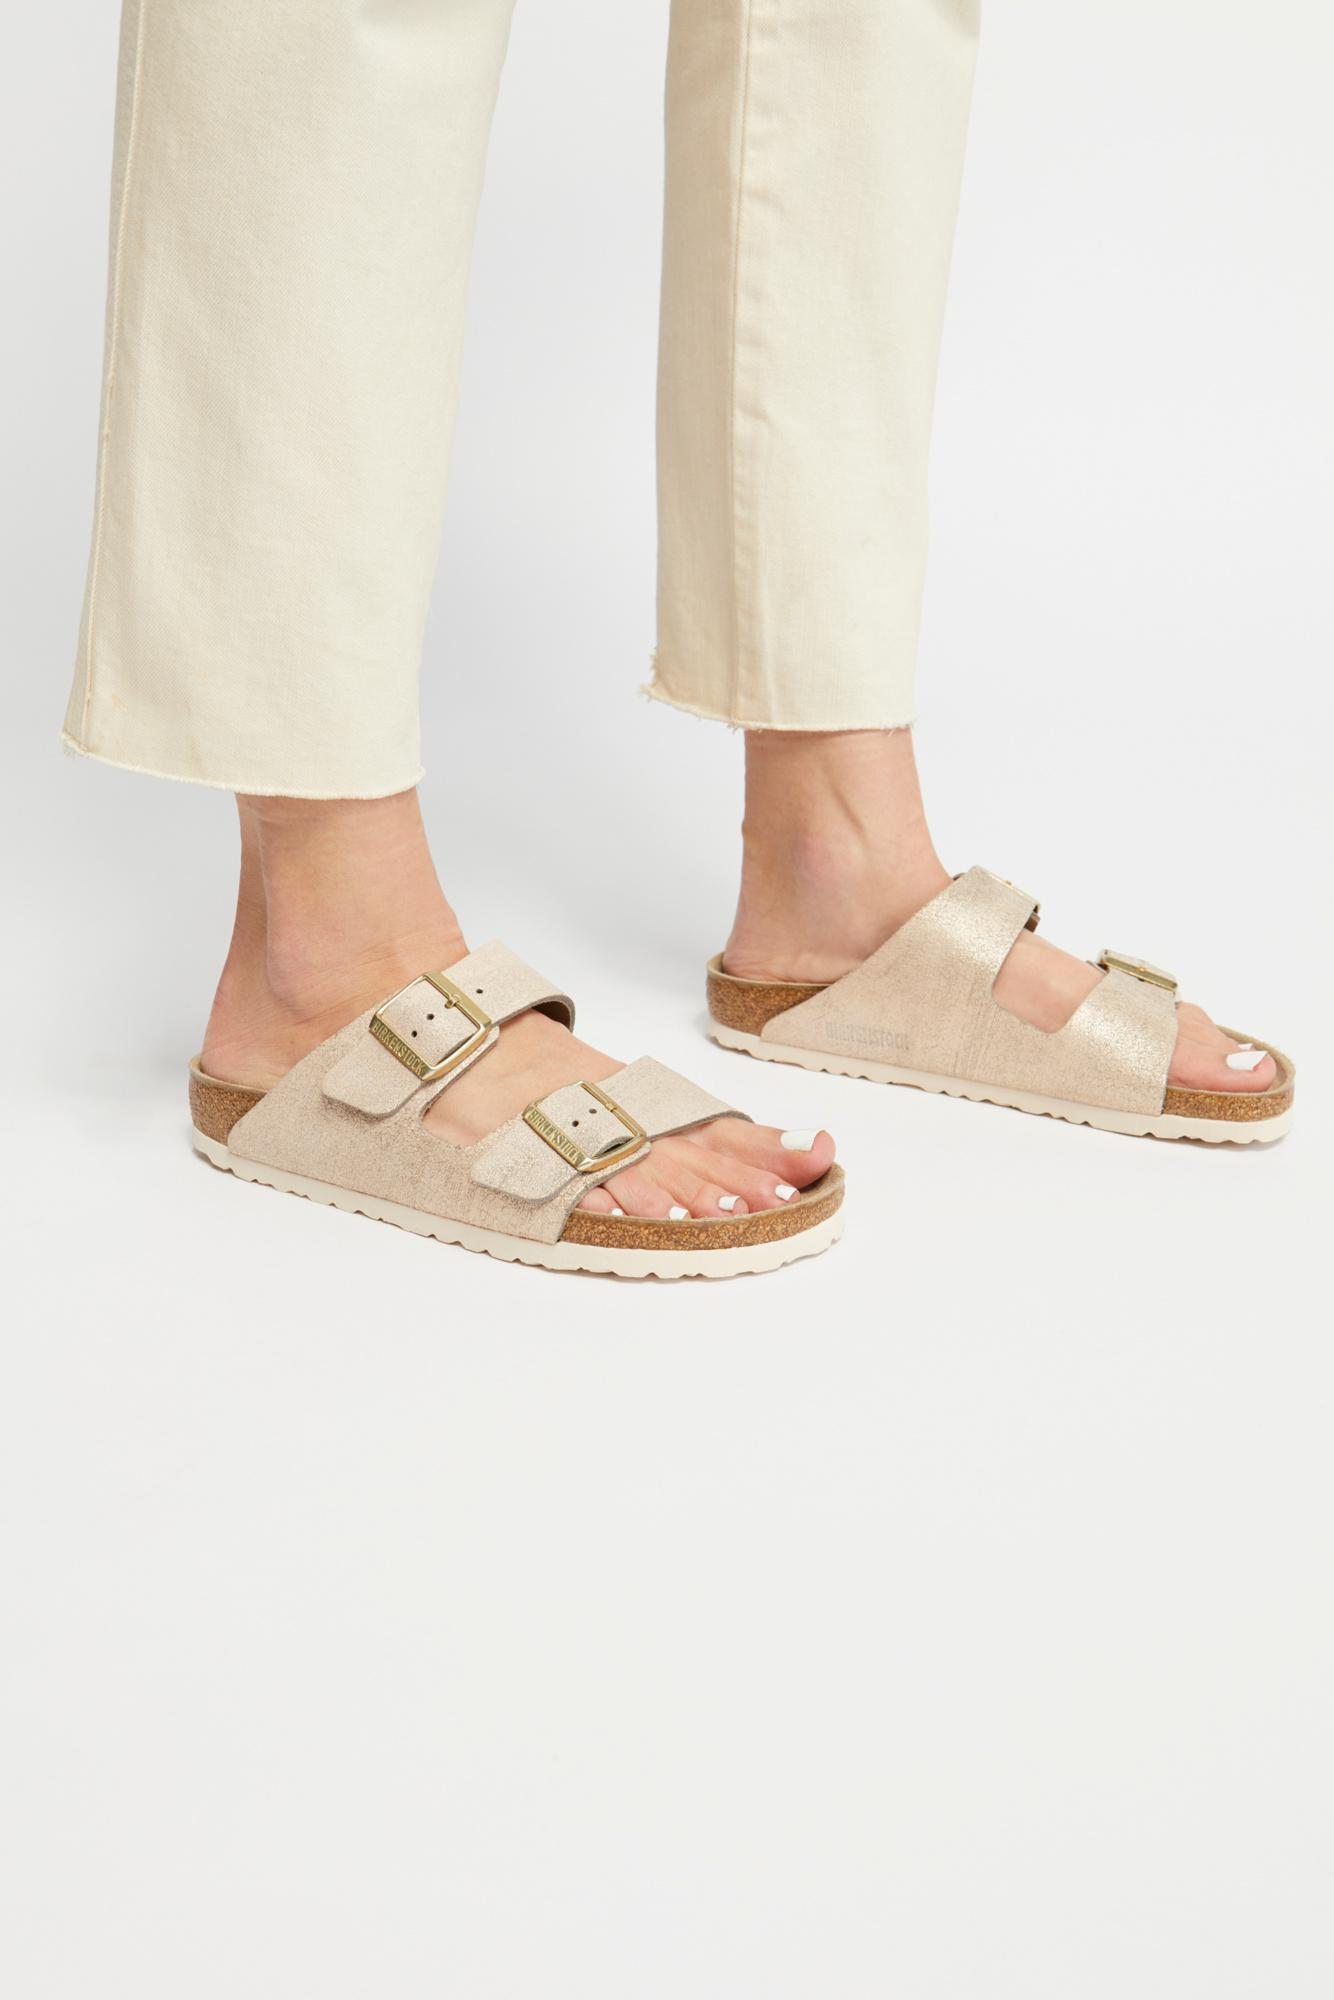 a49826156c1b0 Lyst - Free People Arizona Washed Metallic Birkenstock Sandal in Pink